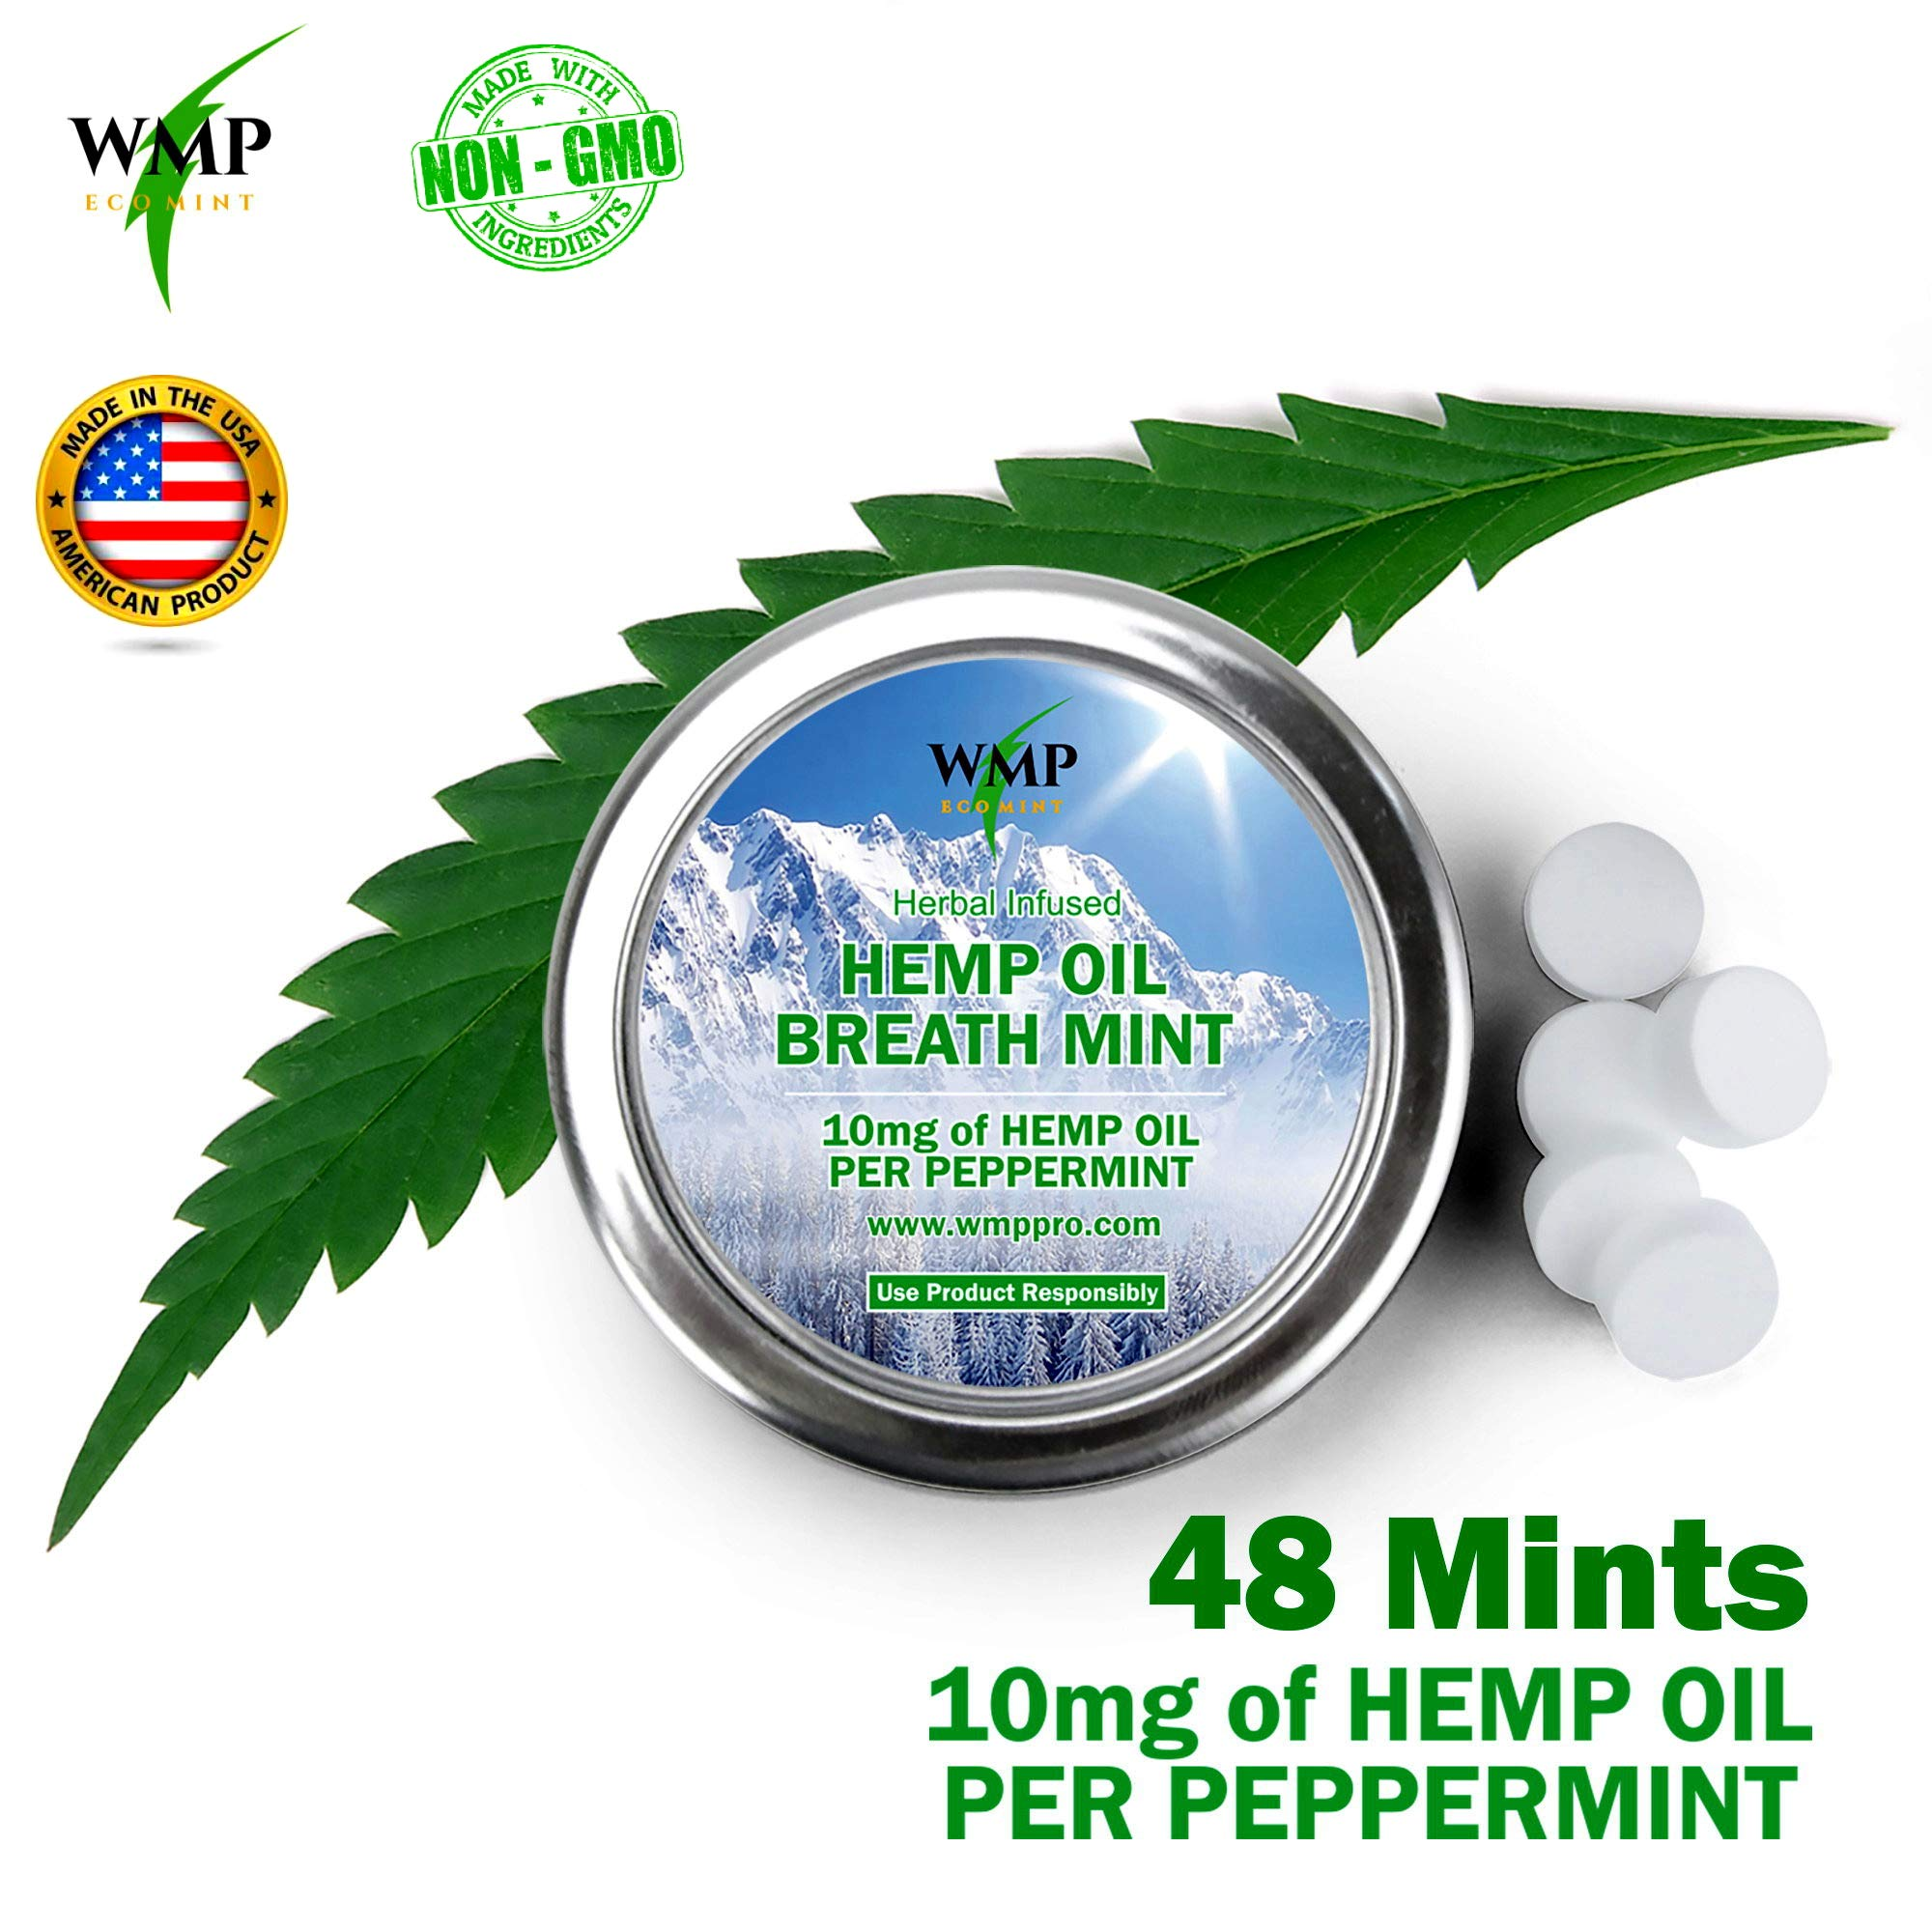 Premium Hemp Breath Mints - Organic Minty Edibles for Relaxing, Stress, Better Sleep, Pain, Anxiety Relief, Weight Loss - Peppermint Flavored Candies No THC, 0 Calorie - 2 Pack